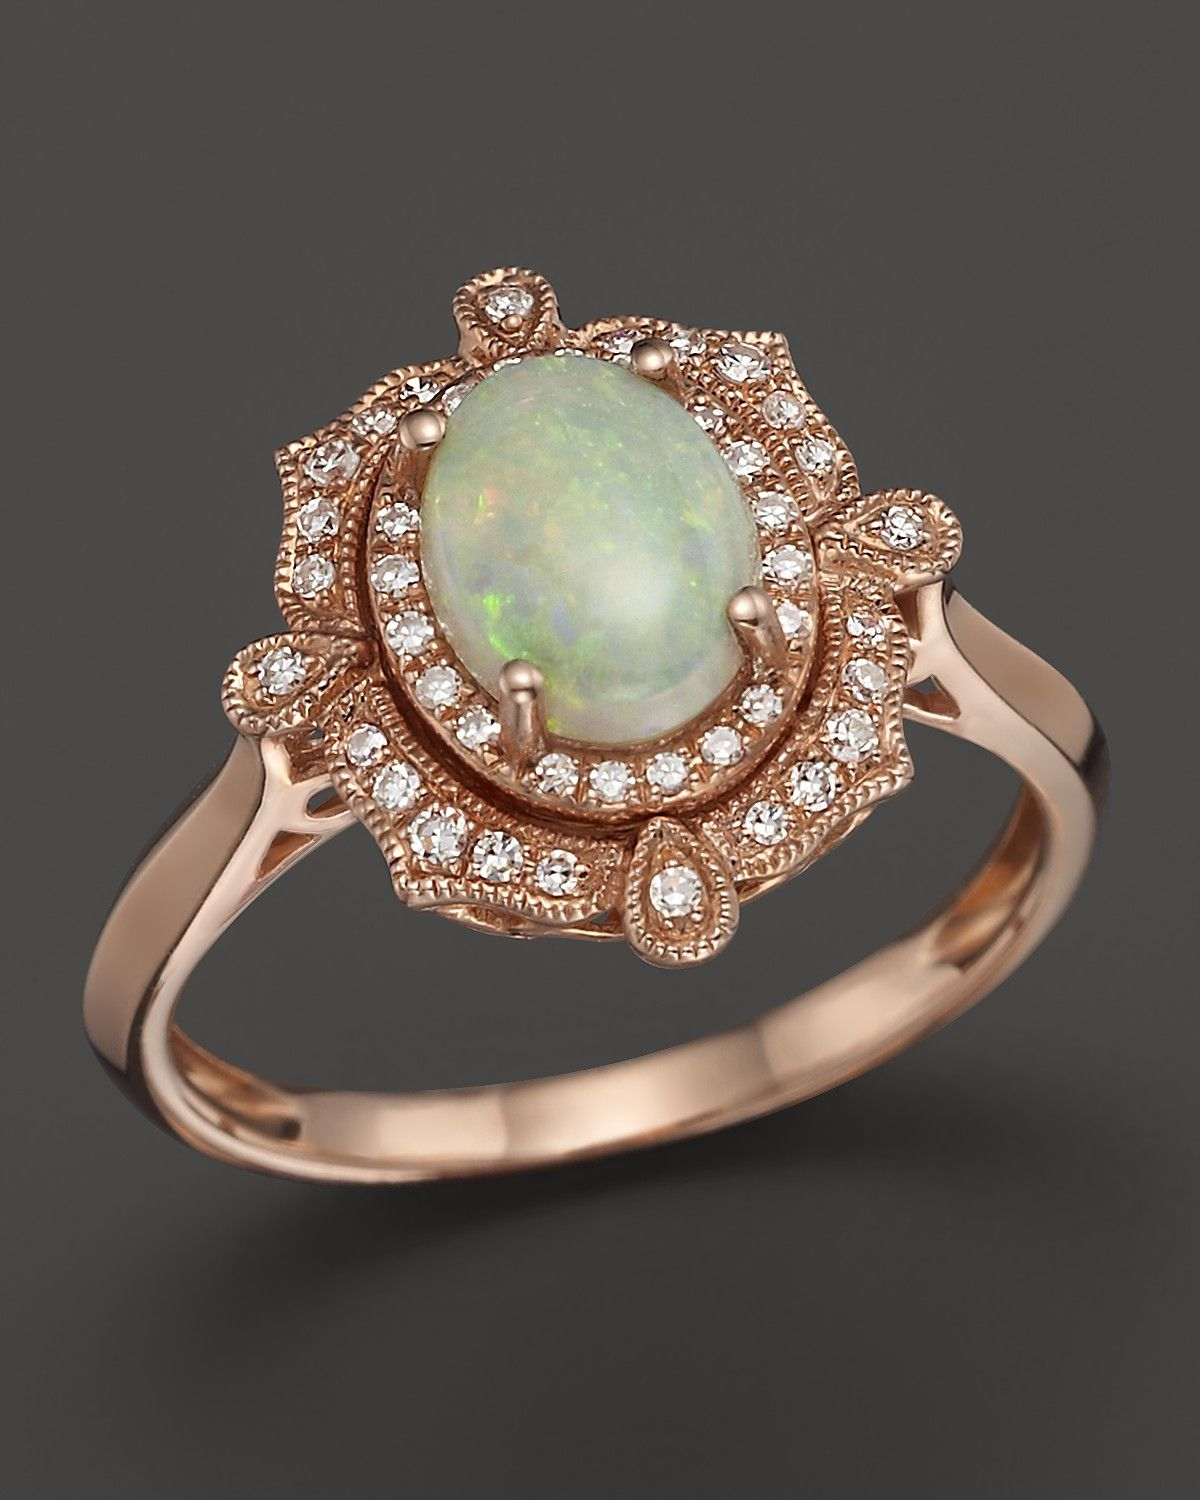 Opal and Diamond Antique Inspired Ring in 14K Rose Gold PRICE EUR